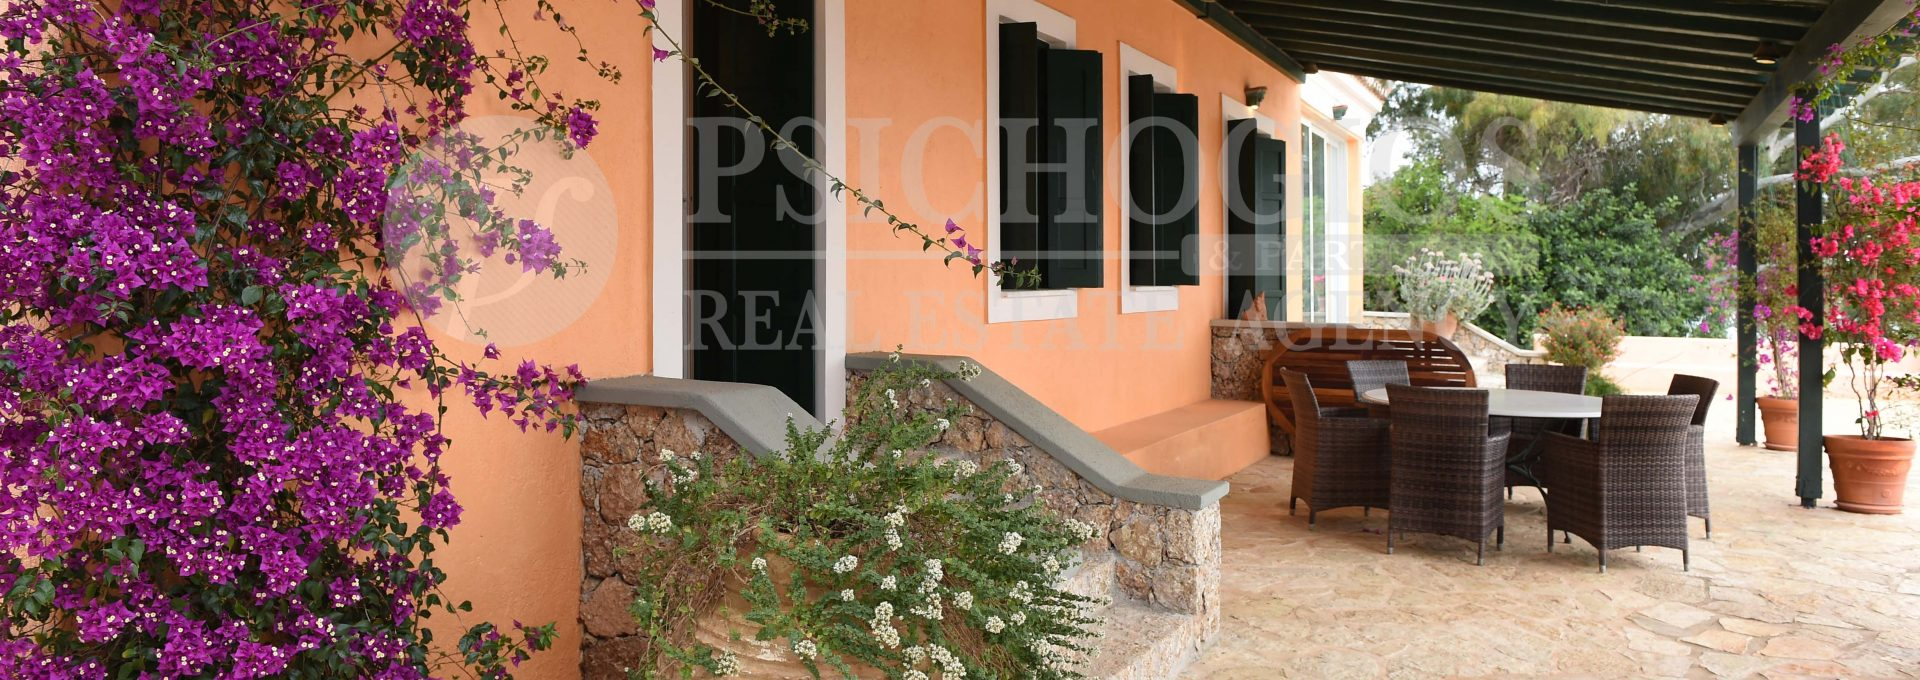 for_rent_house_600_square_meters_sea_view_porto_heli_greece (69)